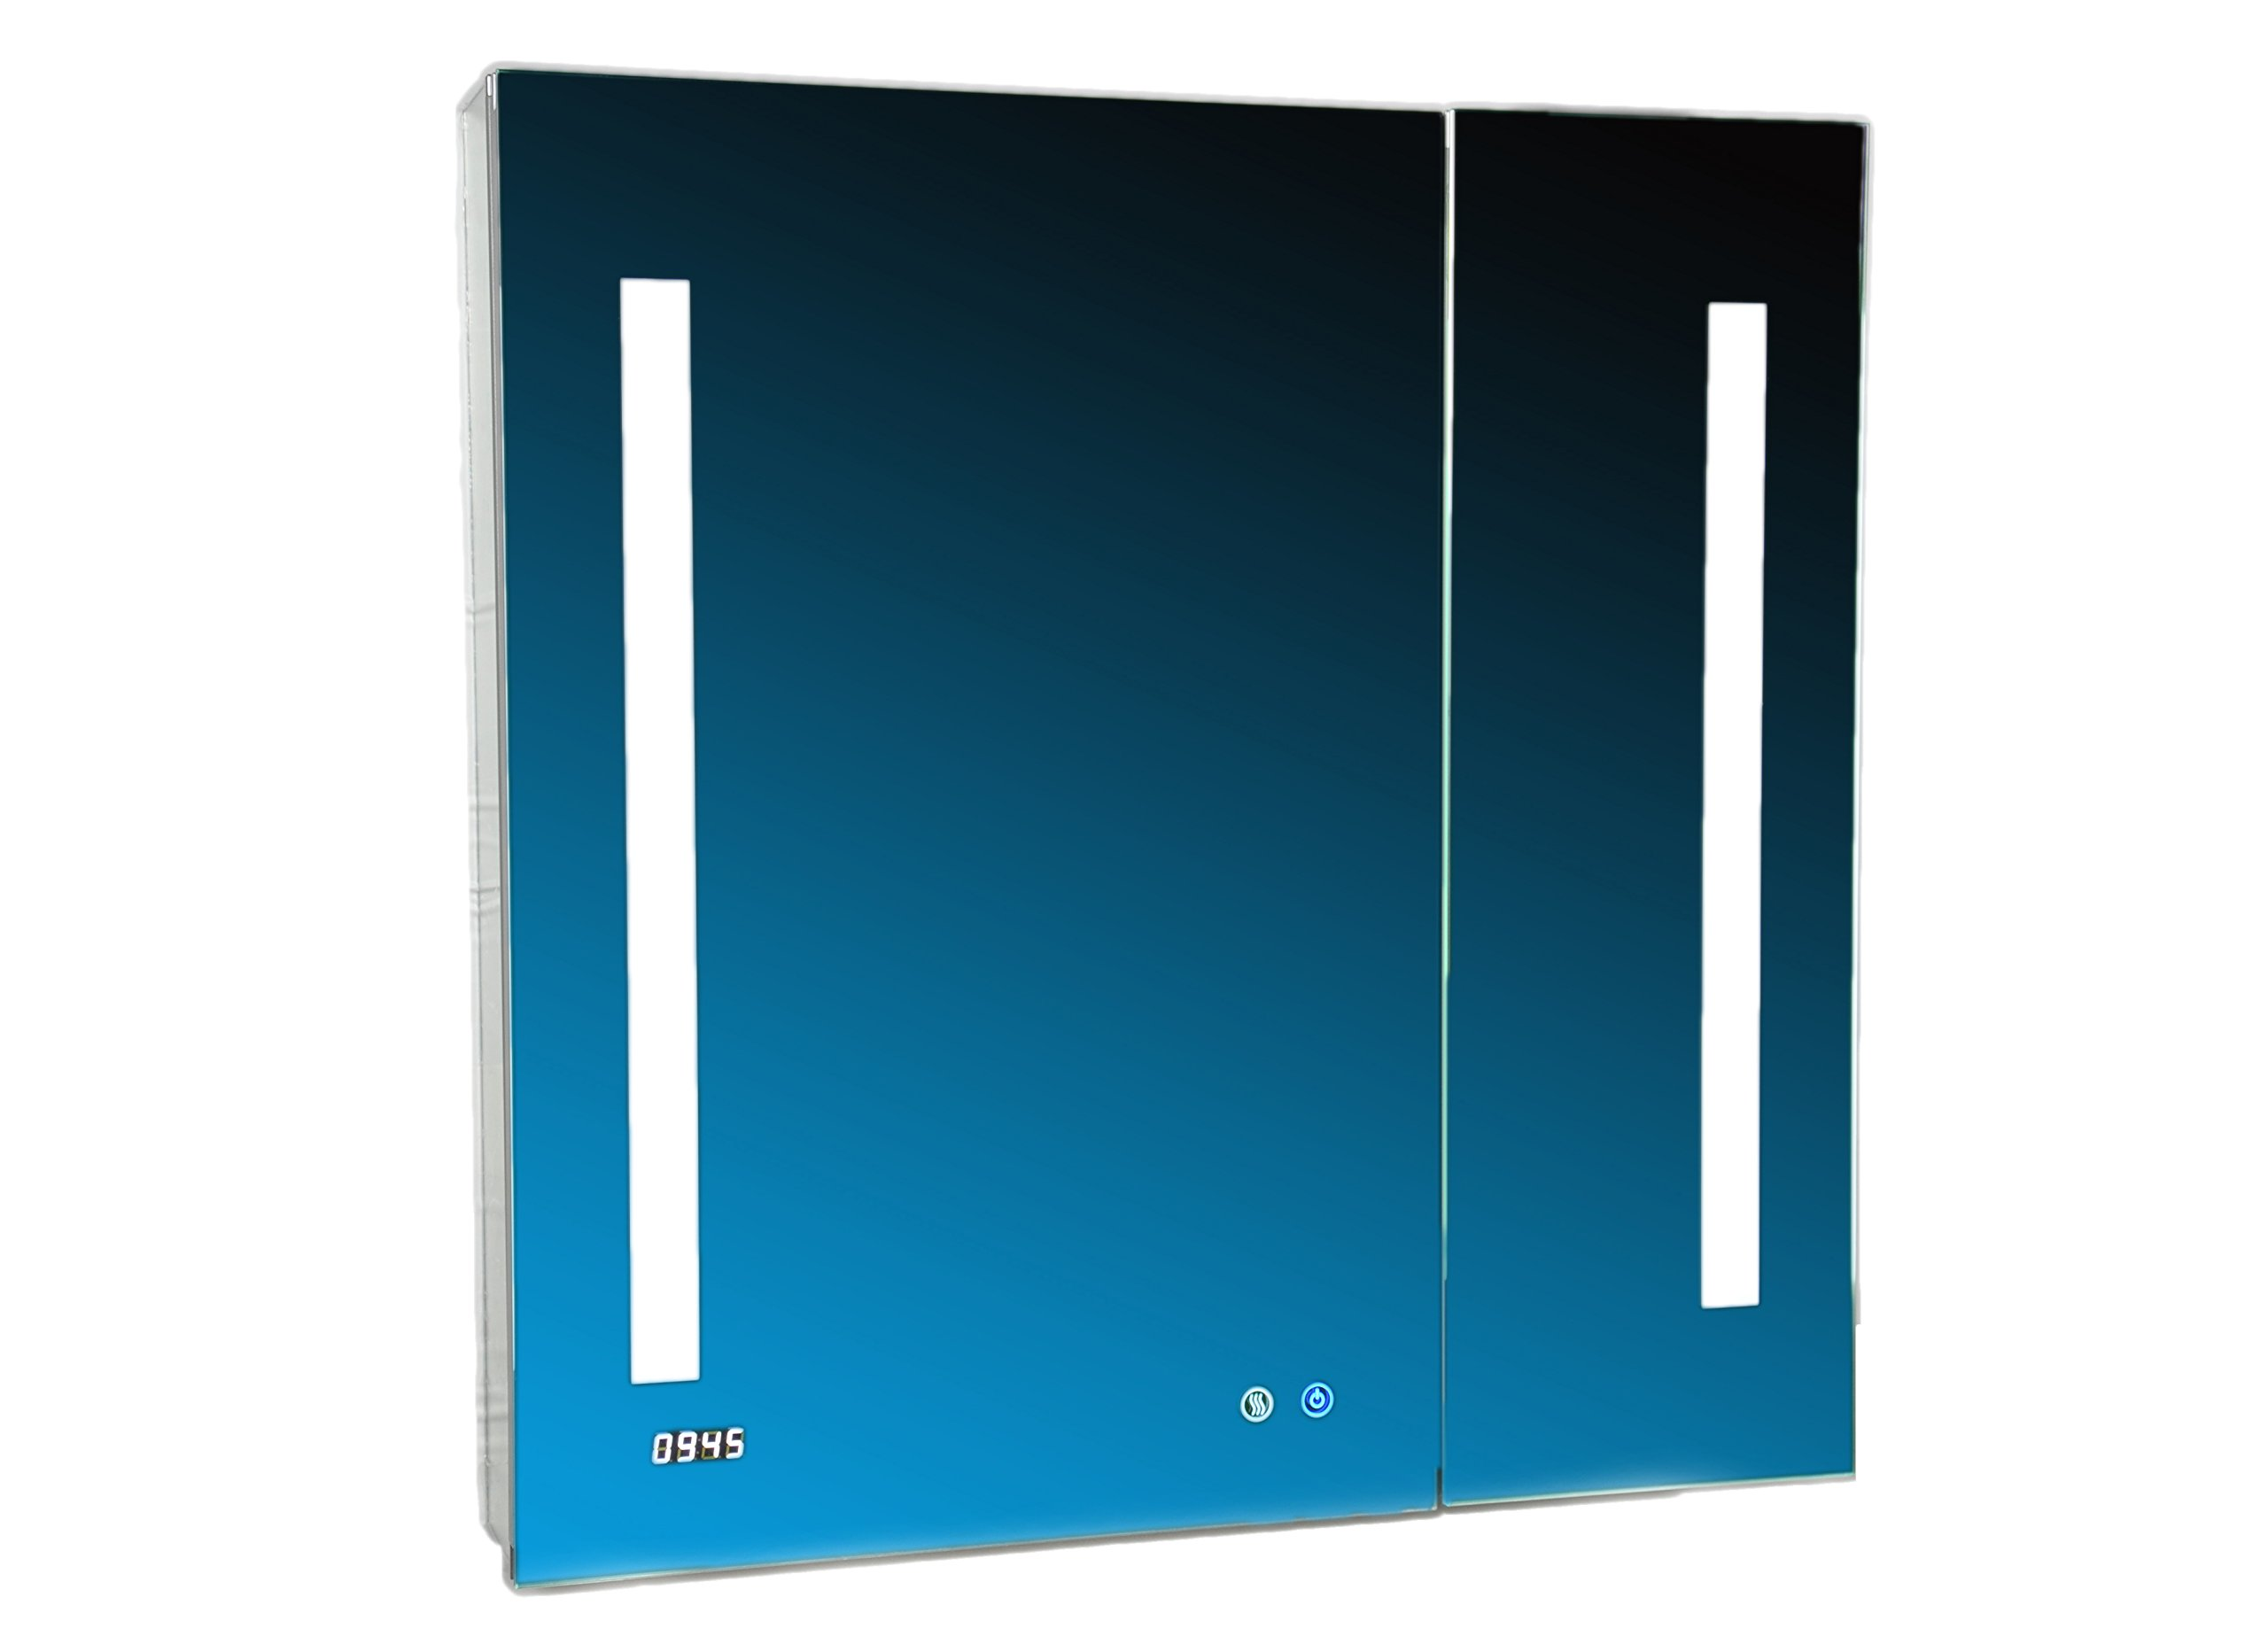 AQUADOM SIGNATURE ROYALE Mirror Glass Cabinet for Bathroom with 3D LED Color Temperature Lights- Clock & USB with Outlets-Recessed & Surface Mount-Defog Mechanism-Touch Screen Button 30in x 30in x 5in